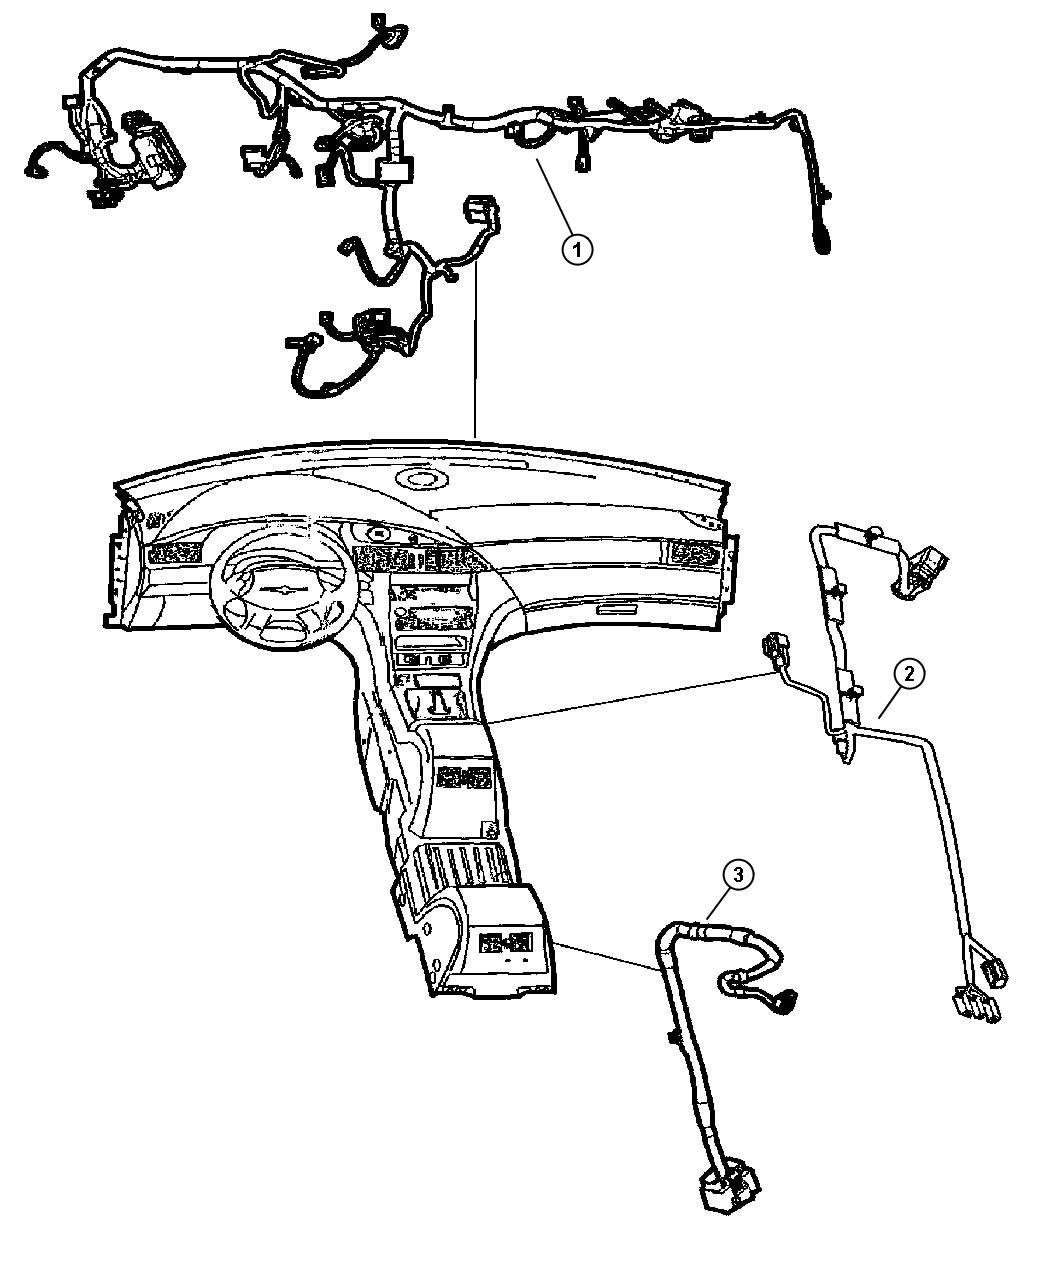 Chrysler Pacifica Wiring. Console. Rear, rear console